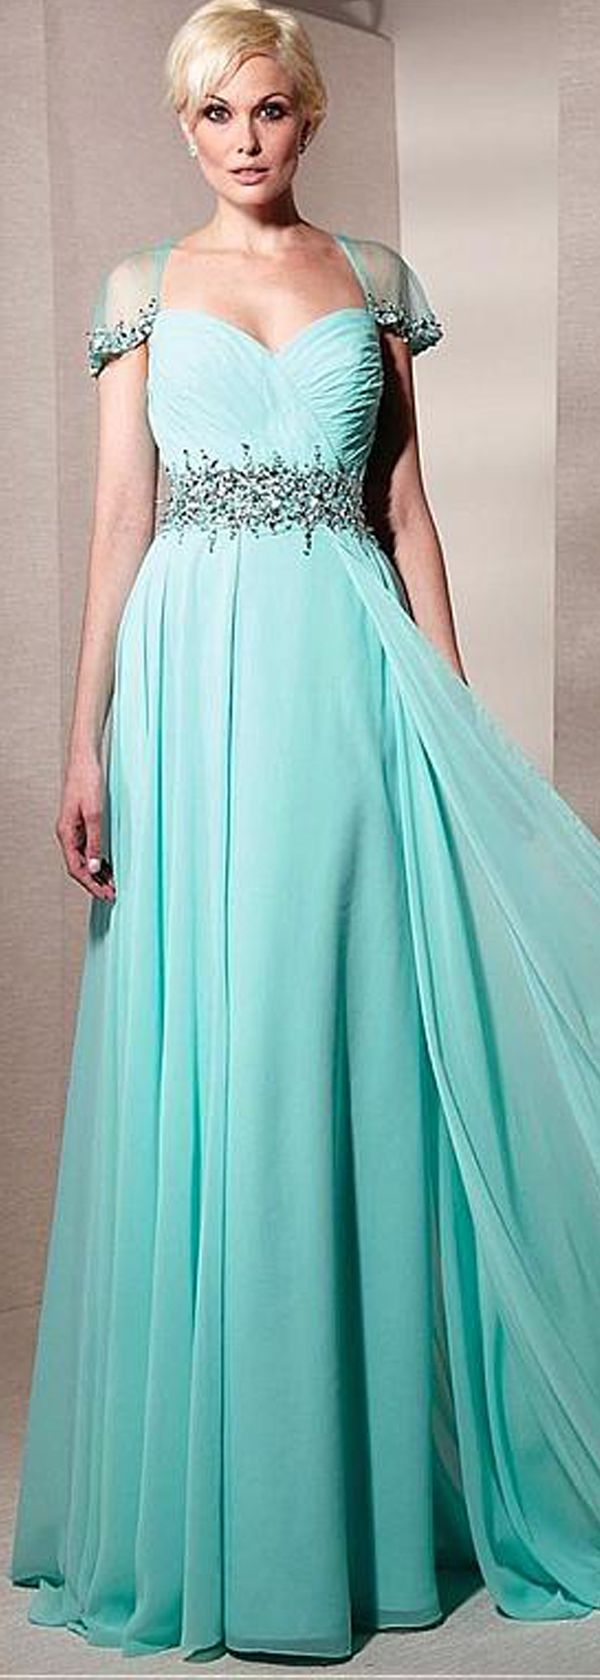 Beautiful Tulle & Chiffon Sweetheart Neckline Cap Sleeves A-line ...